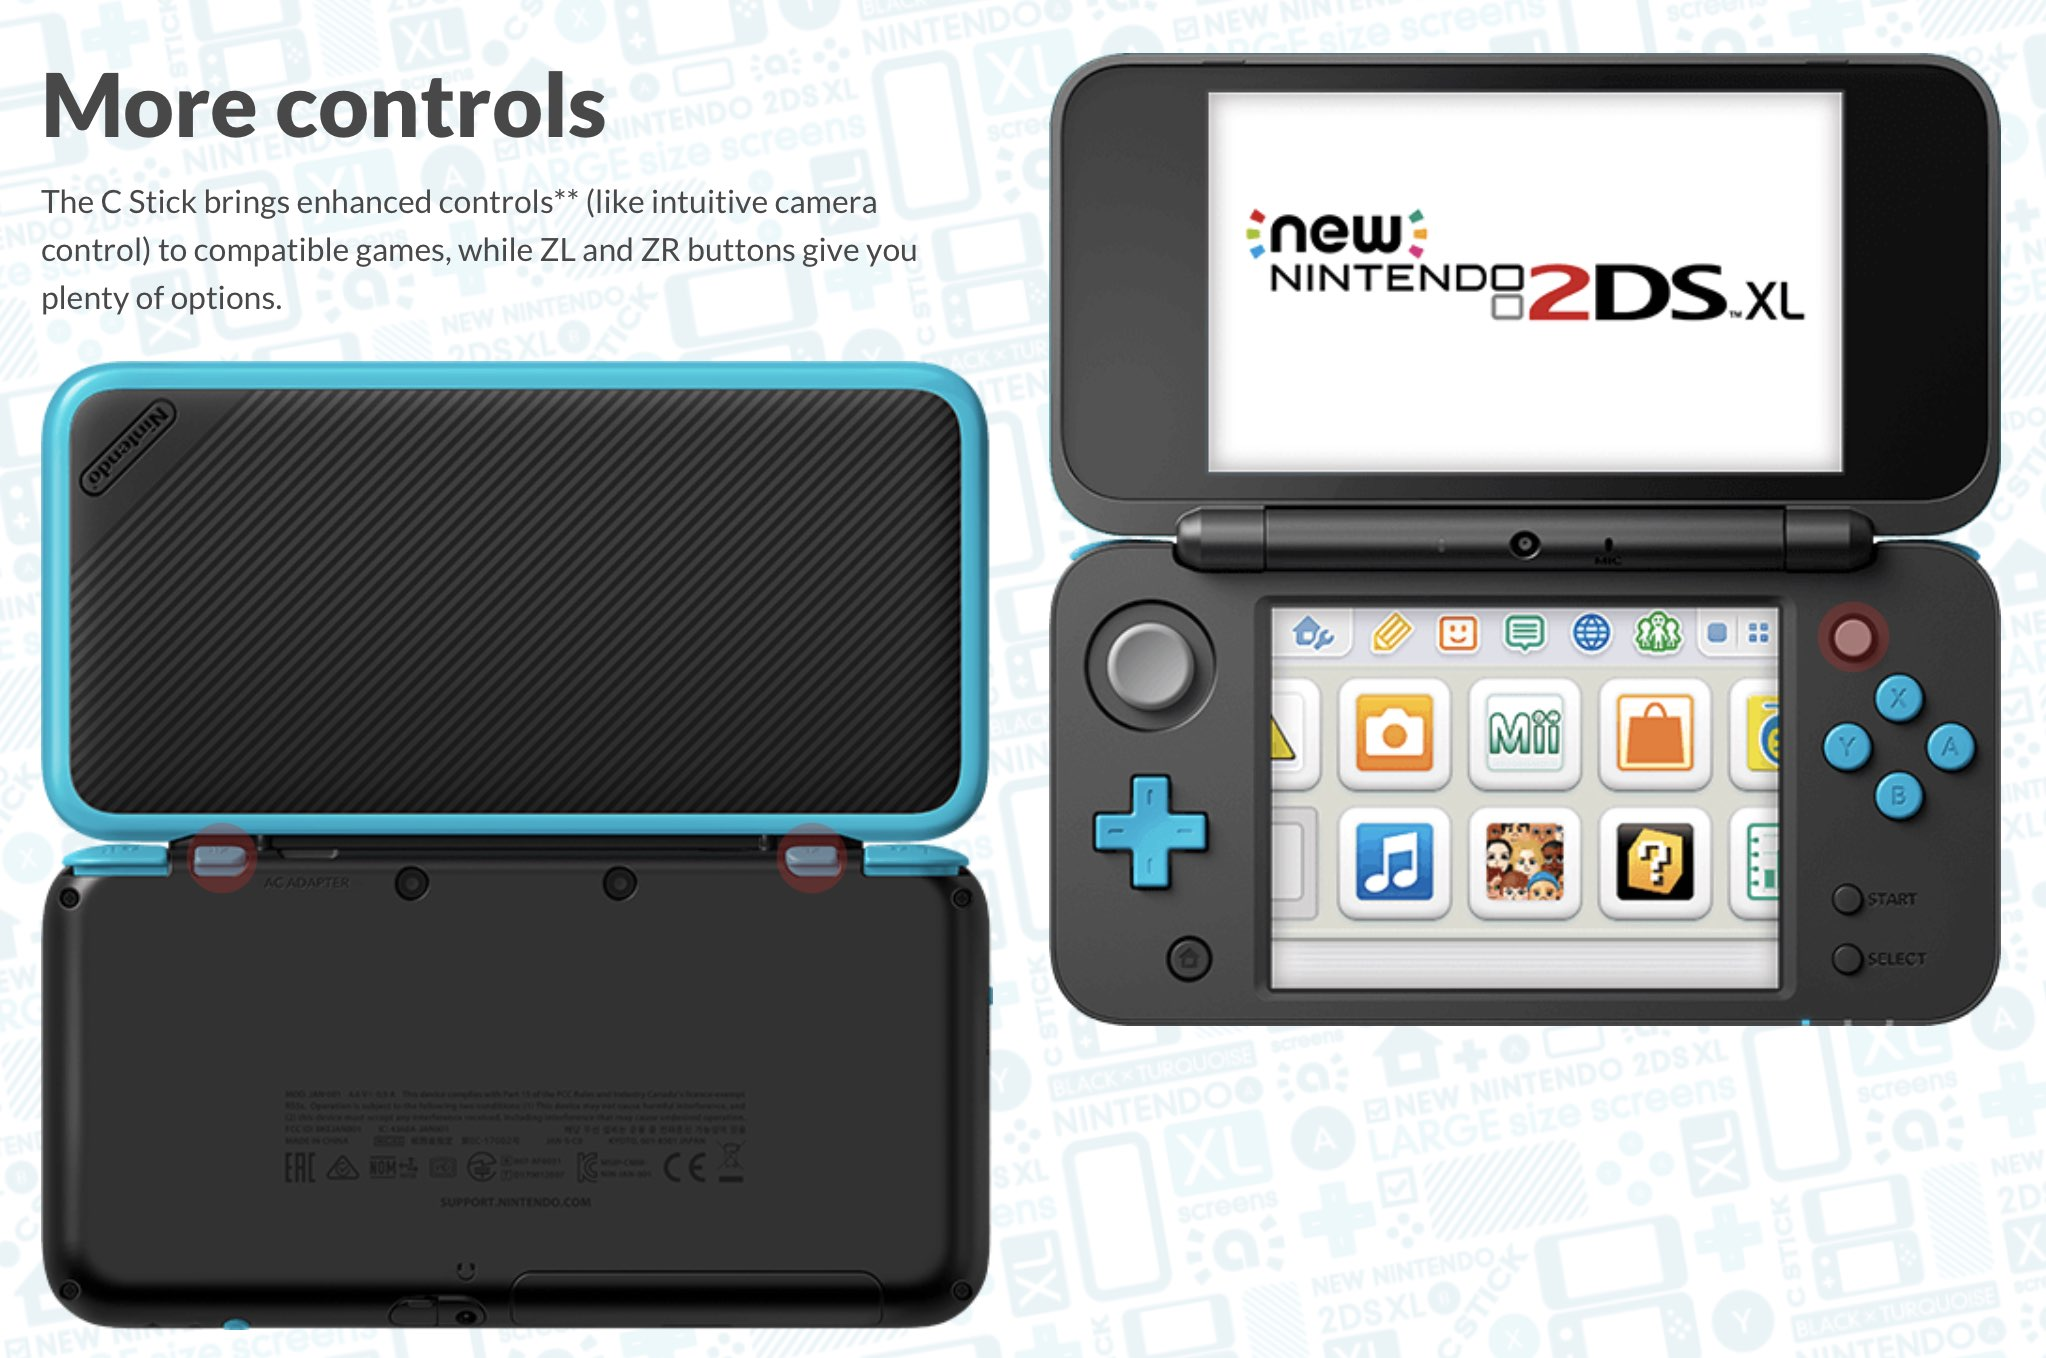 So, What Do You Think? Is This Something Of Interest To You? As Someone Who  Owns 3 3ds Systems And A Switch, I Don't Think I'll Be Grabbing This  Anytime